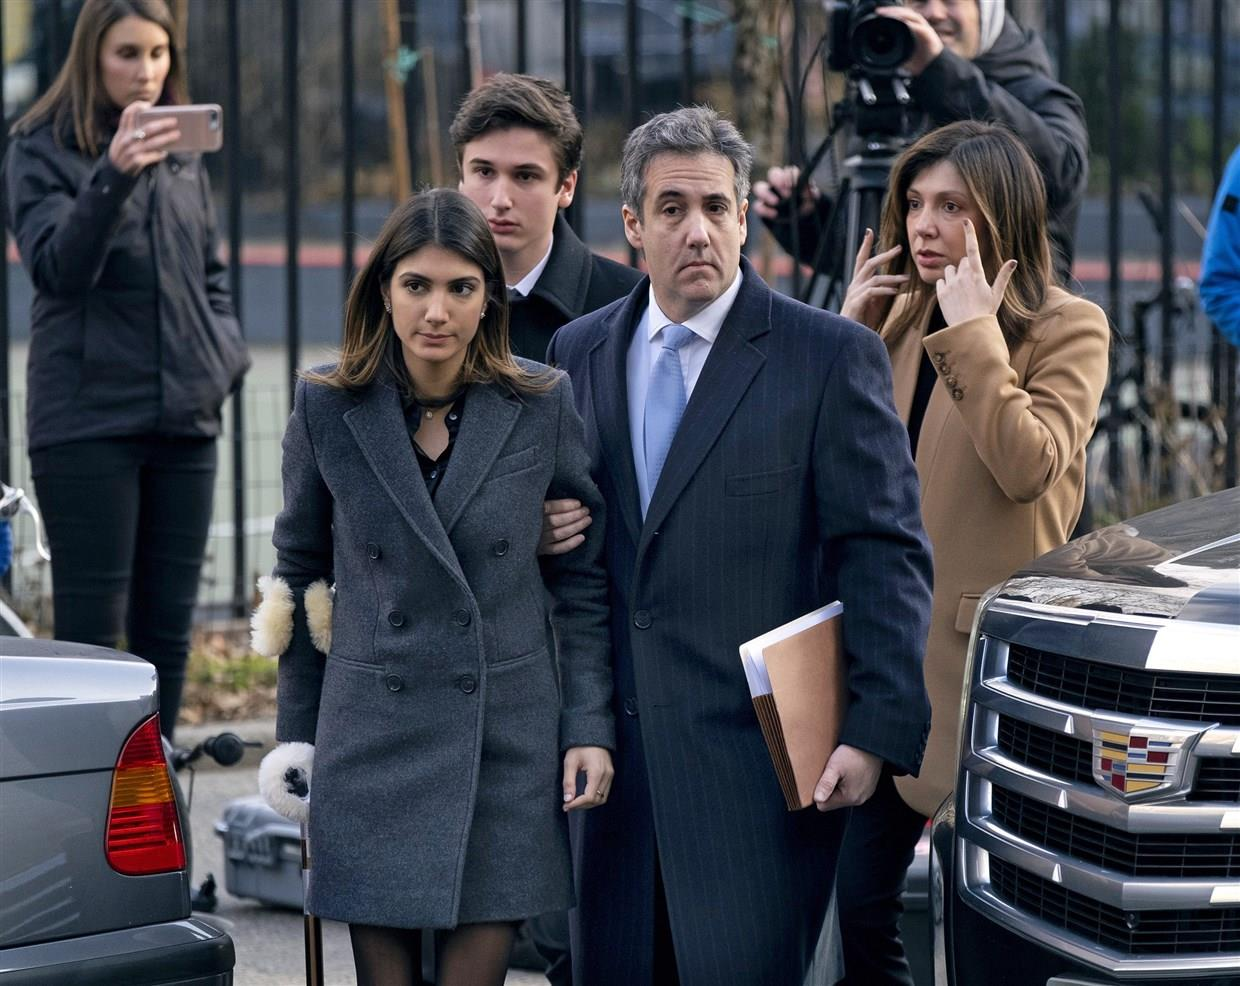 Ex-Trump personal lawyer Michael Cohen sentenced to 3 years in prison